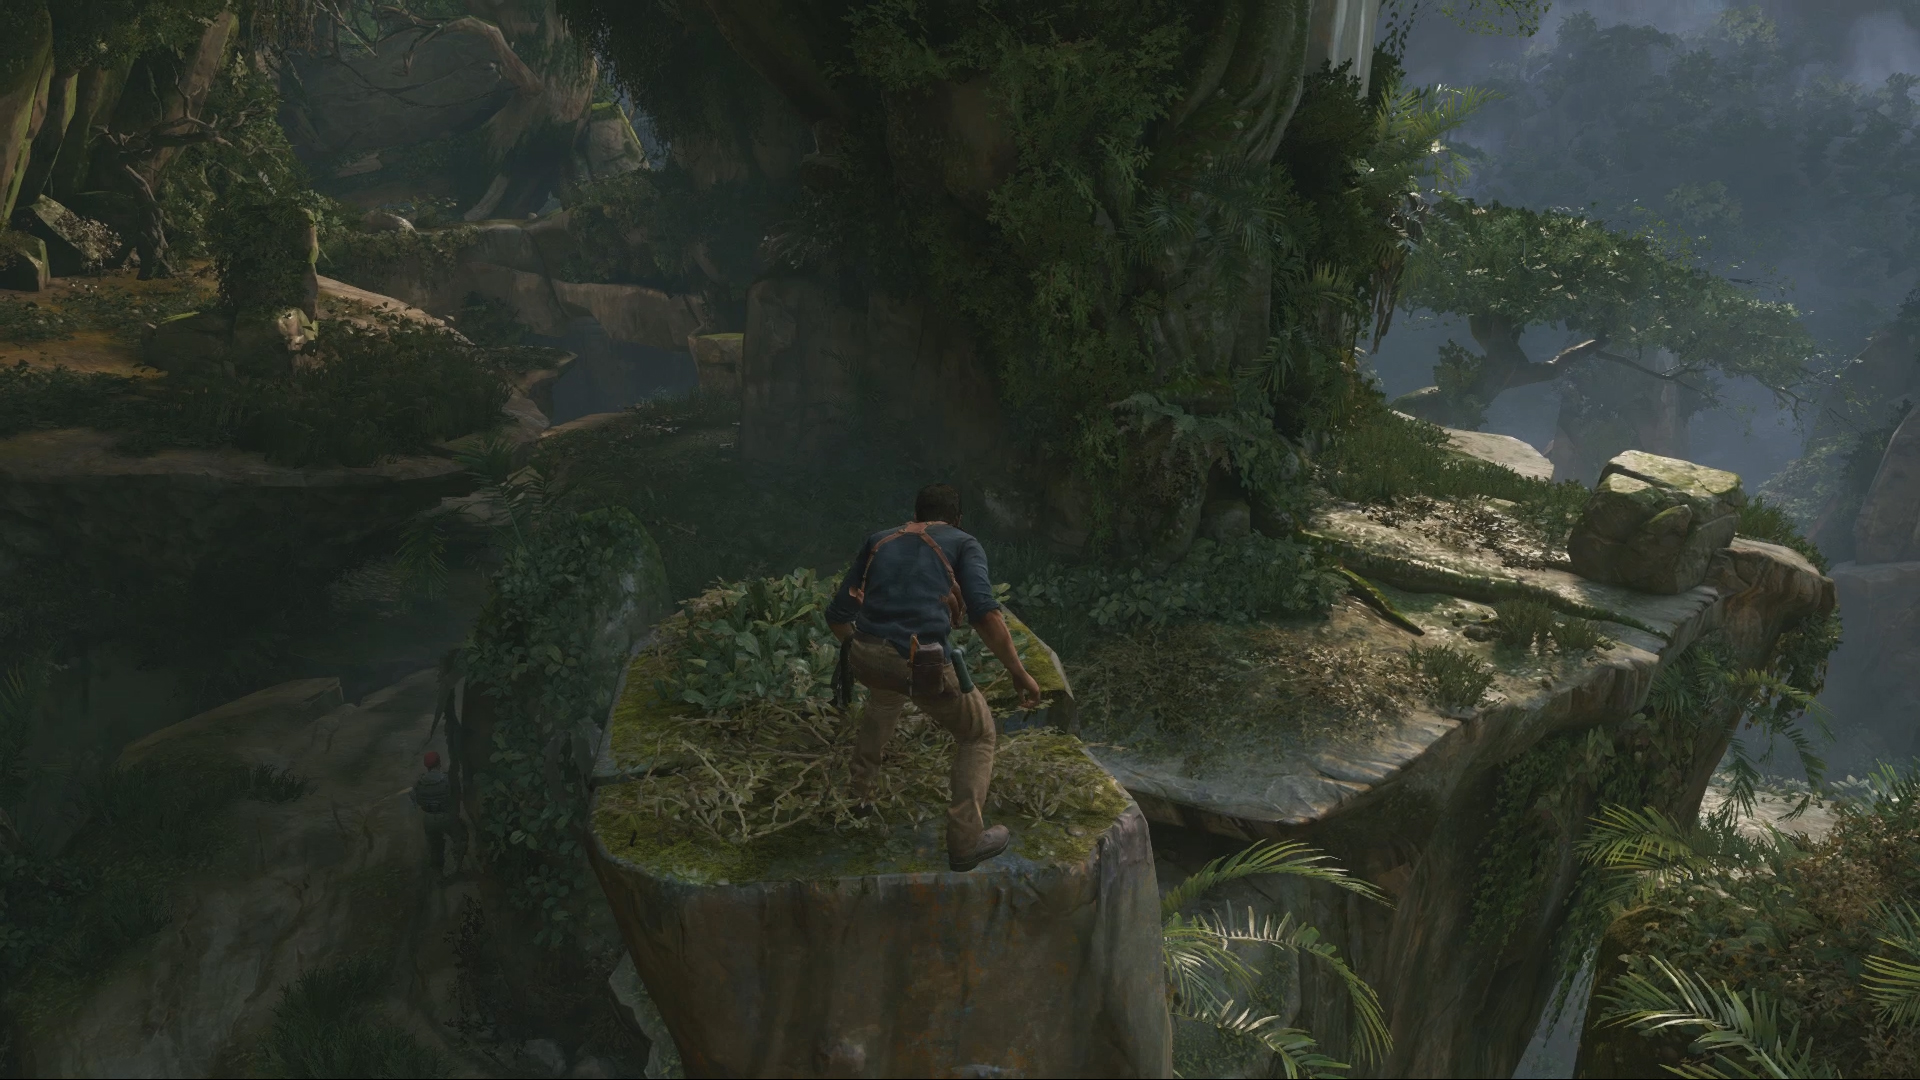 Uncharted 4: A Thief's End PS4 E3 2014 Build vs PSX ...